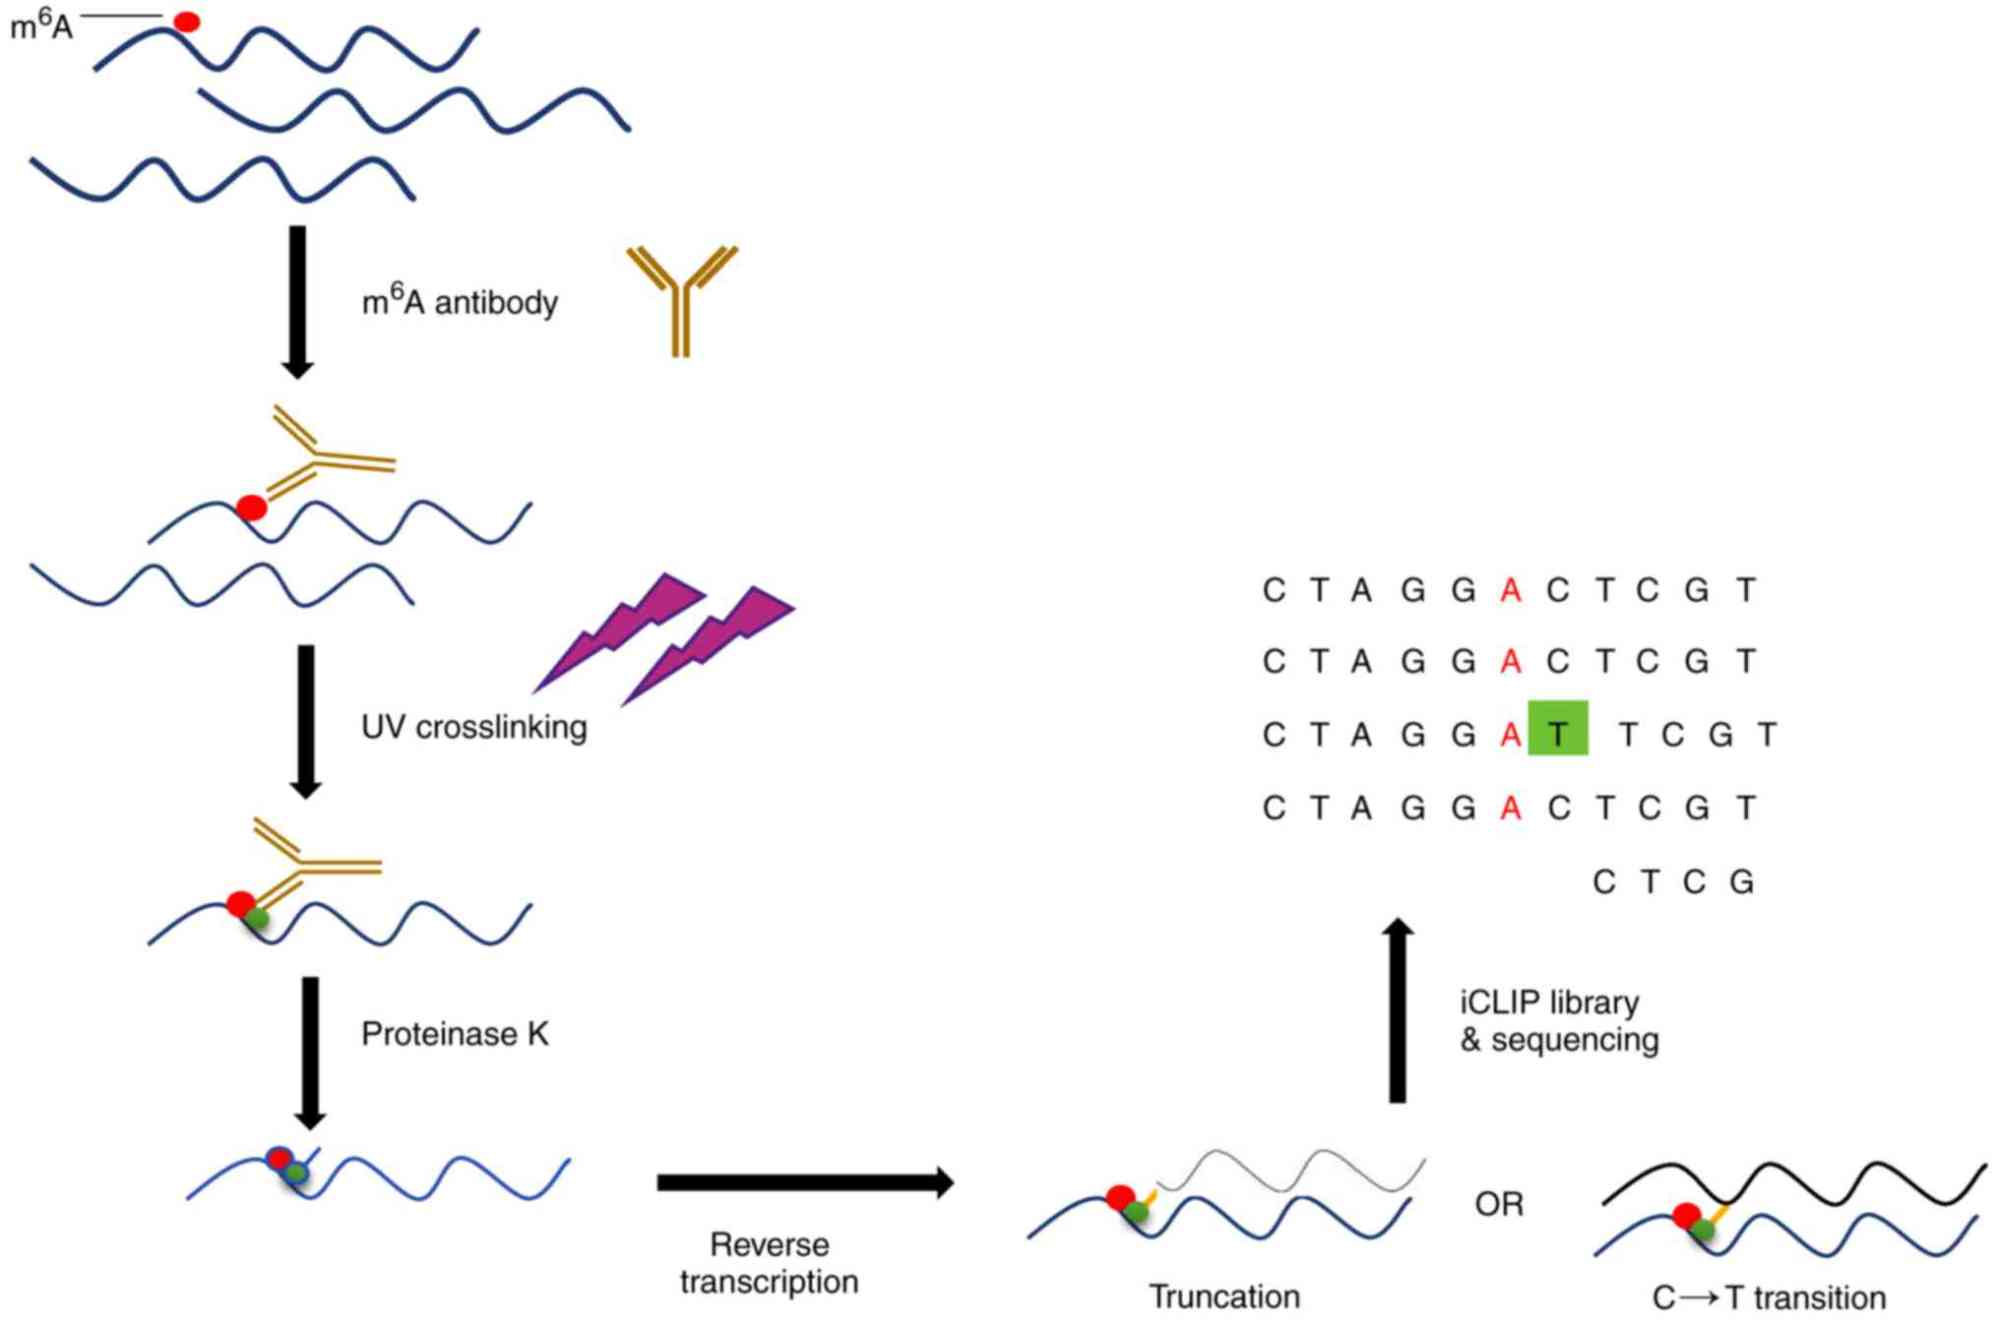 hight resolution of schematic diagram of miclip technology m6a residues can be mapped by generating unique signature mutations with m6a specific antibodies and uv crosslinking